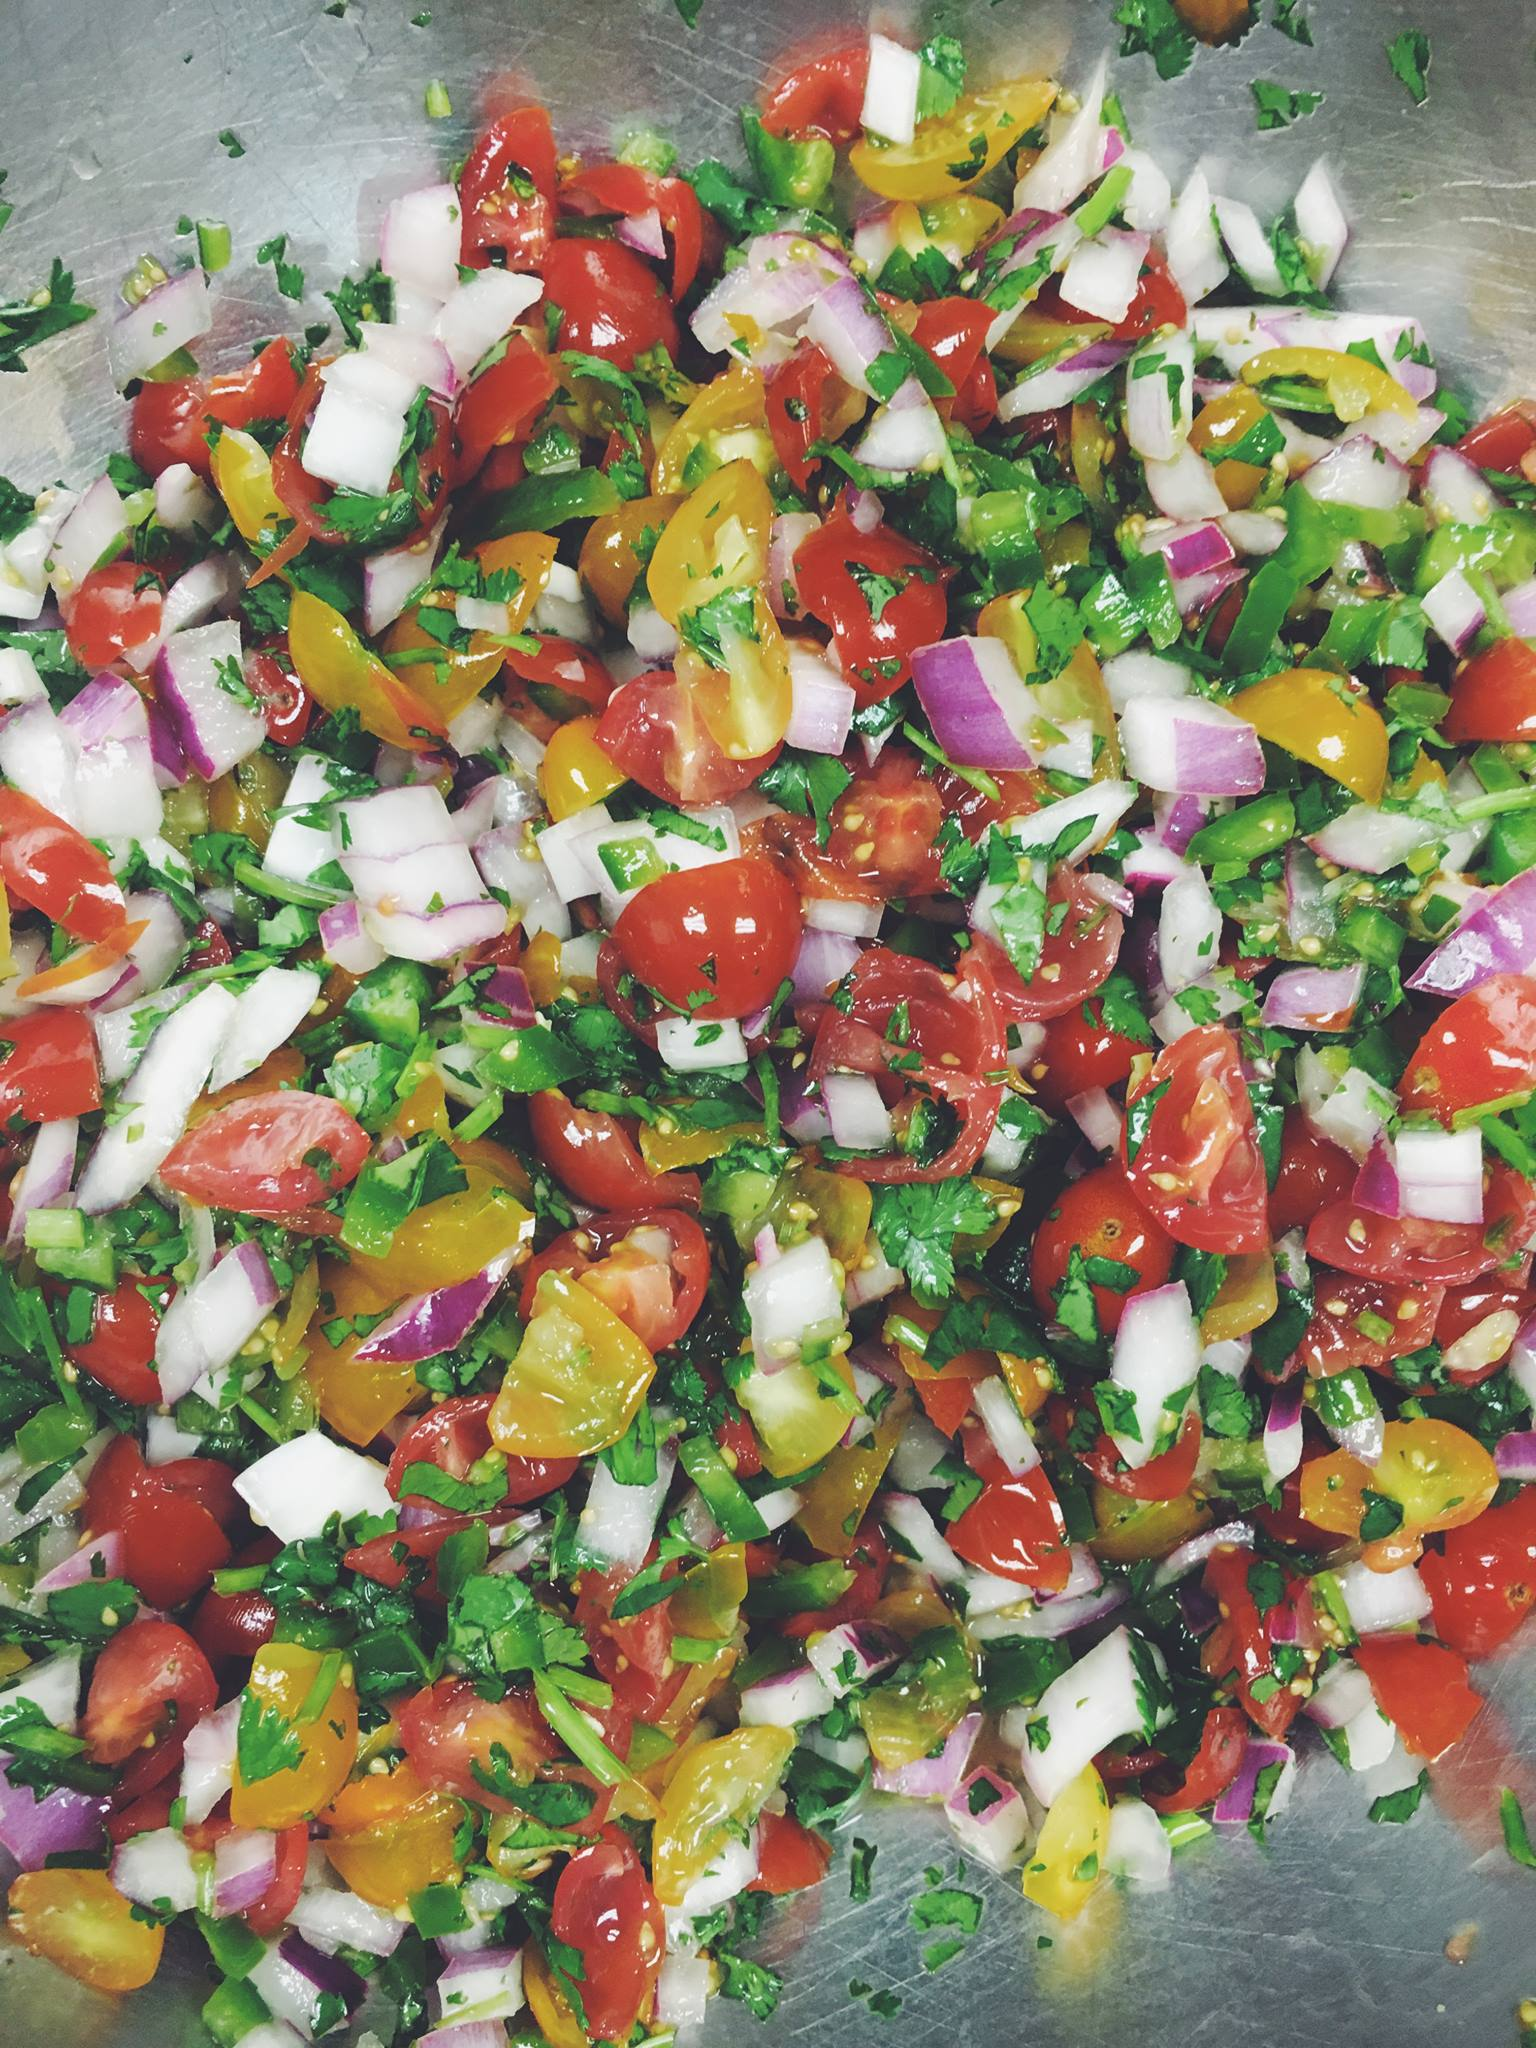 At this time of year, our pico de gallo is the stuff of nacho dreams. The irresistible combo of peak-season tomatoes, shredded slow-roasted pork and pickled jalapeños is a must-have before our kitchen closes for the winter.